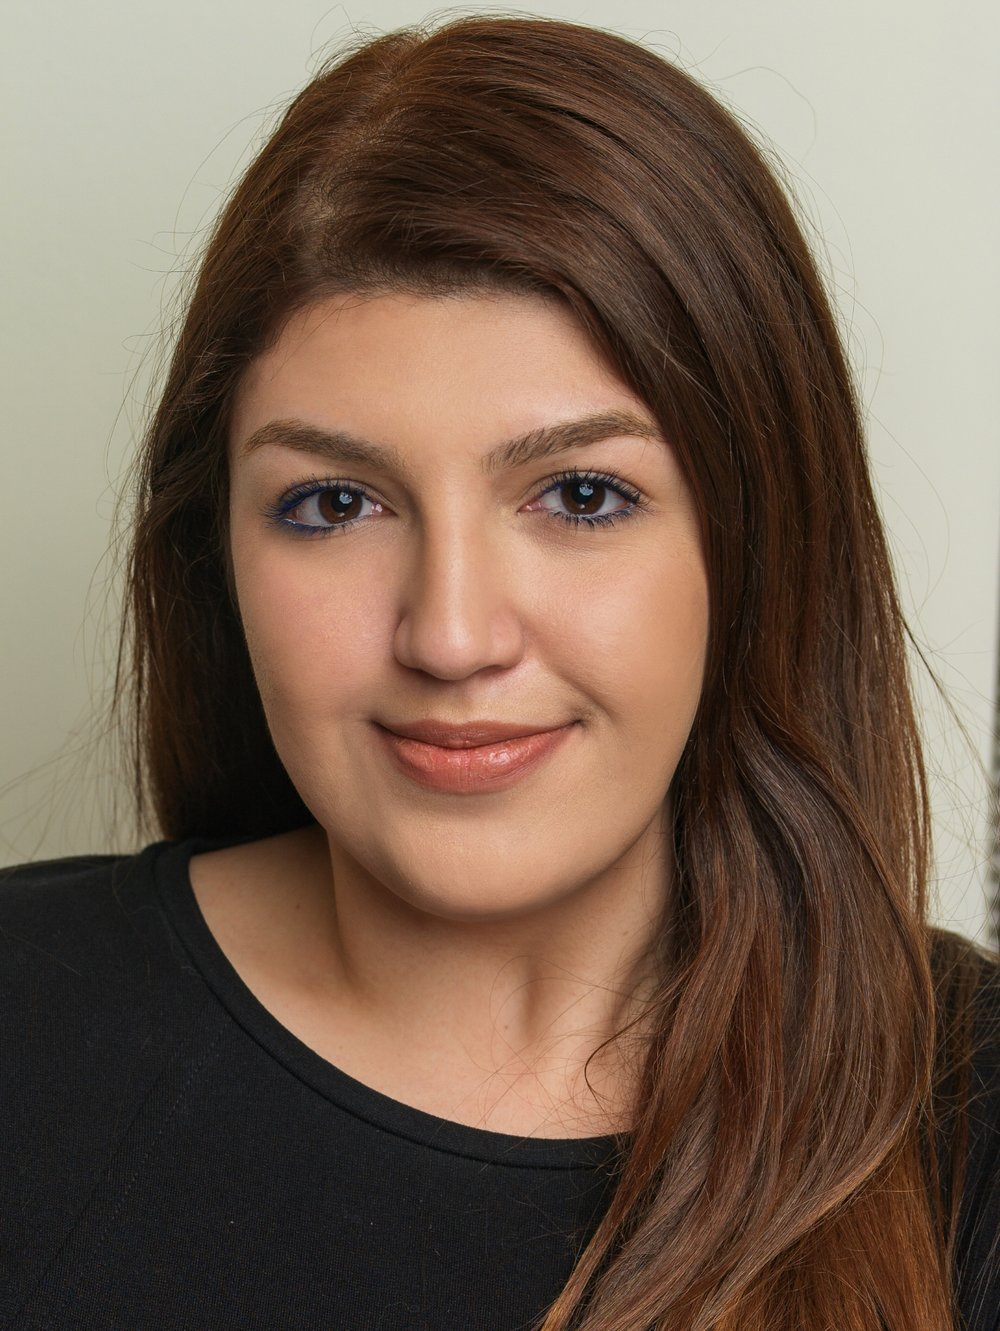 Lina Al Araj - Corporate & Legal Affairs Lina manages Corporate & Legal Affairs for Silicon Badia, having previously held a similar role at Accelerator Technology Holdings since 2014. Lina graduated from King's College London with a Bachelor of Laws in Law and speaks Russian, Arabic and French.